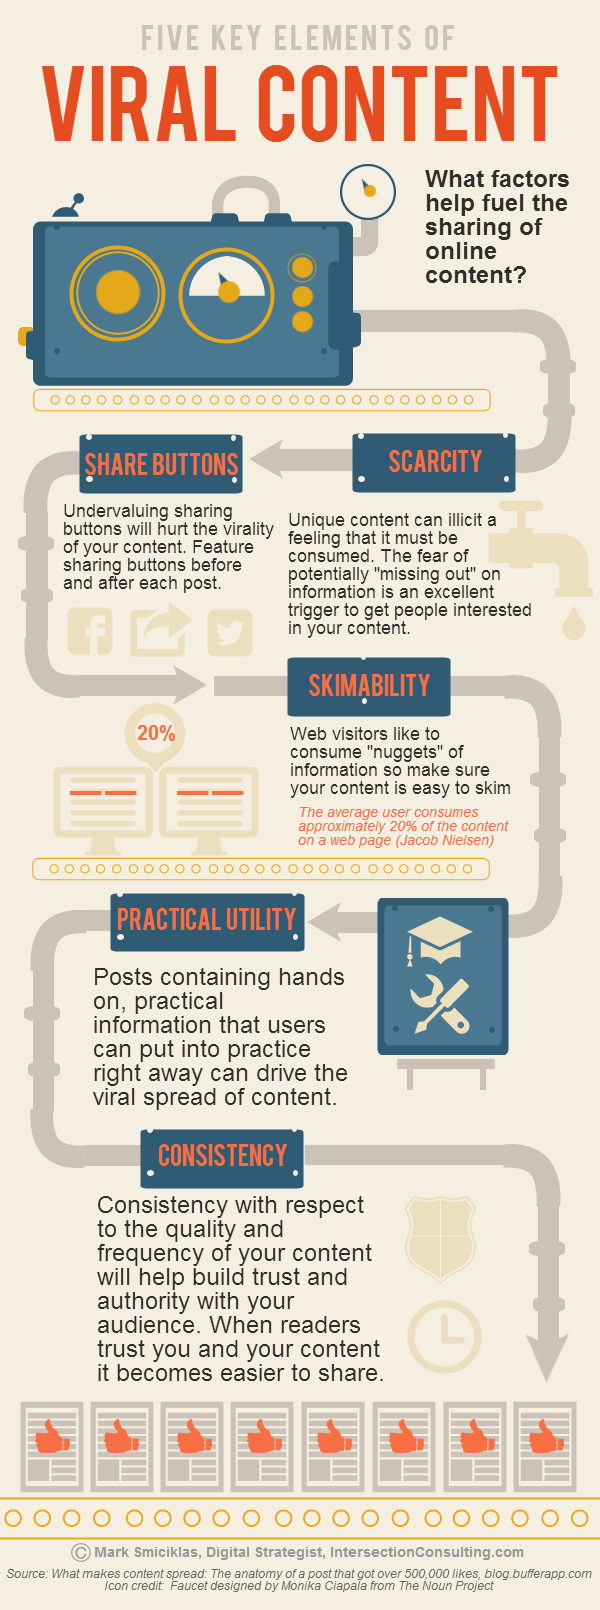 Five important elements to spread content viral